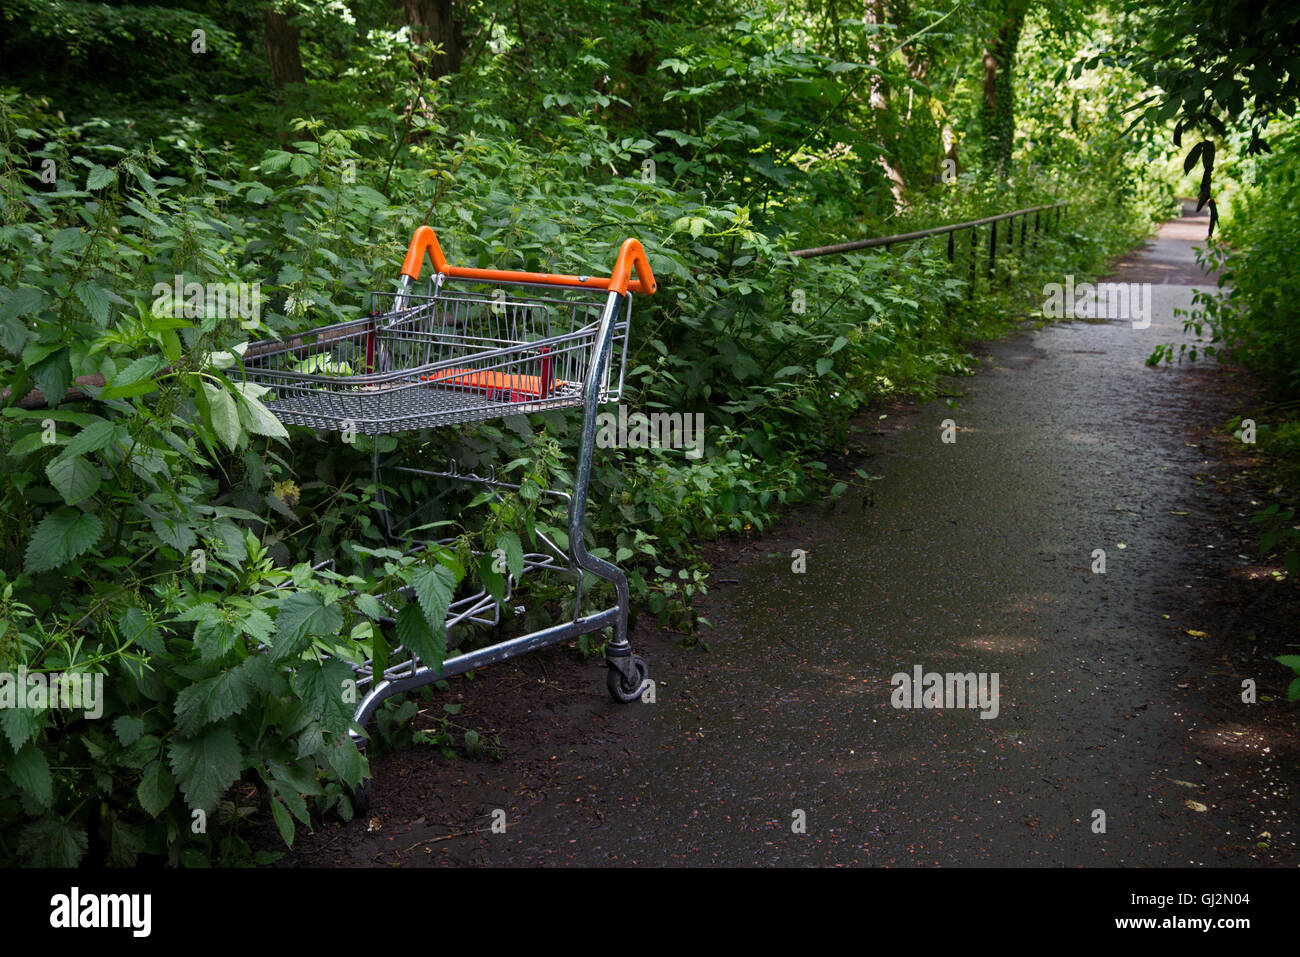 Abandoned supermarket trolley on the cyclepath in Edinburgh. - Stock Image